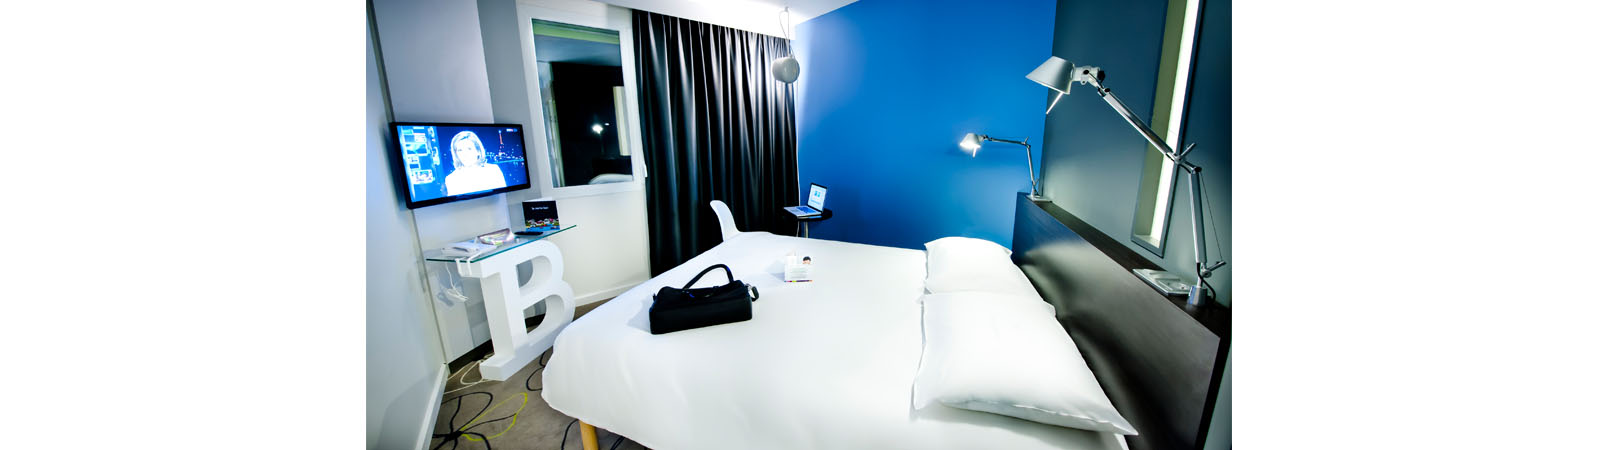 Hotel-ibis-chambre-styles-brest